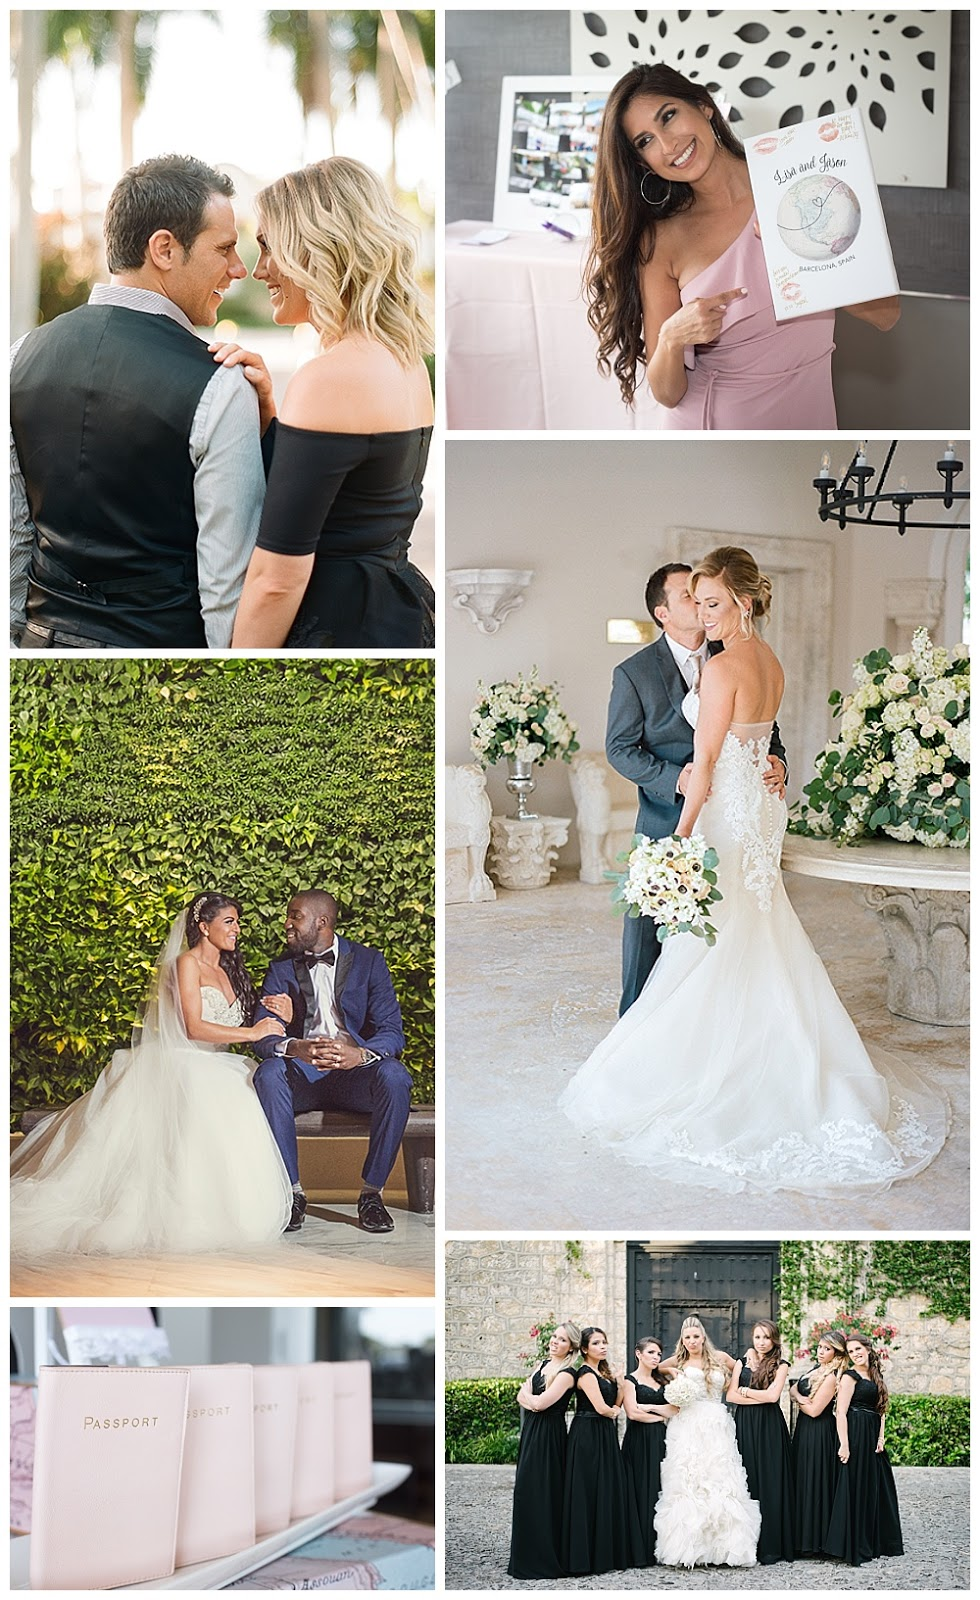 Oh My! Occasions is a wedding planner, designer and event stylist in the South Florida area   Showcasing her beautiful couples and events in her brand new site launch!